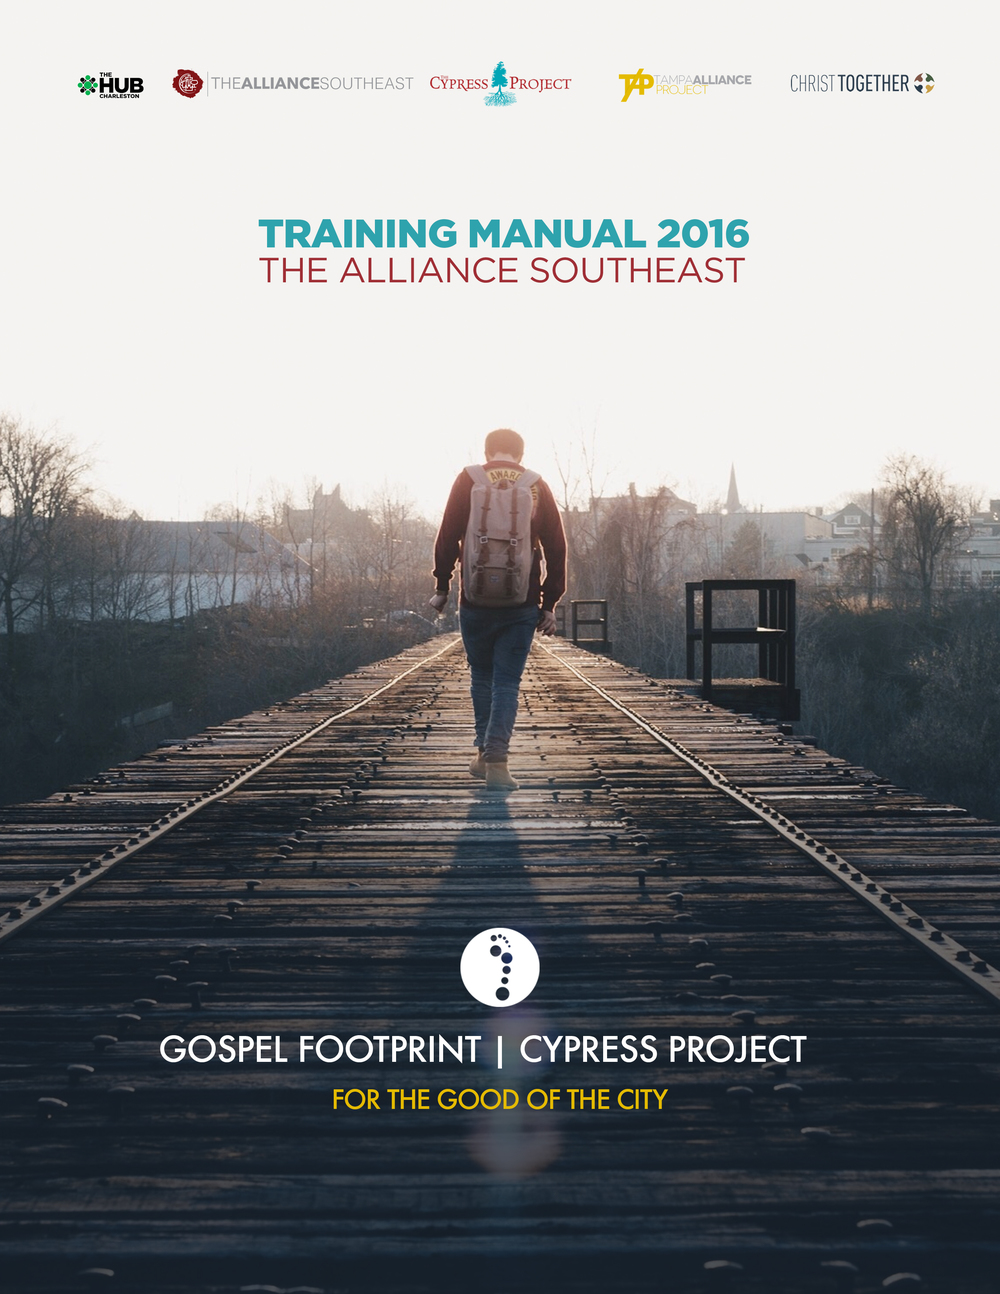 DOWNLOAD SESSION ONE FROM THE TRAINING MANUAL.